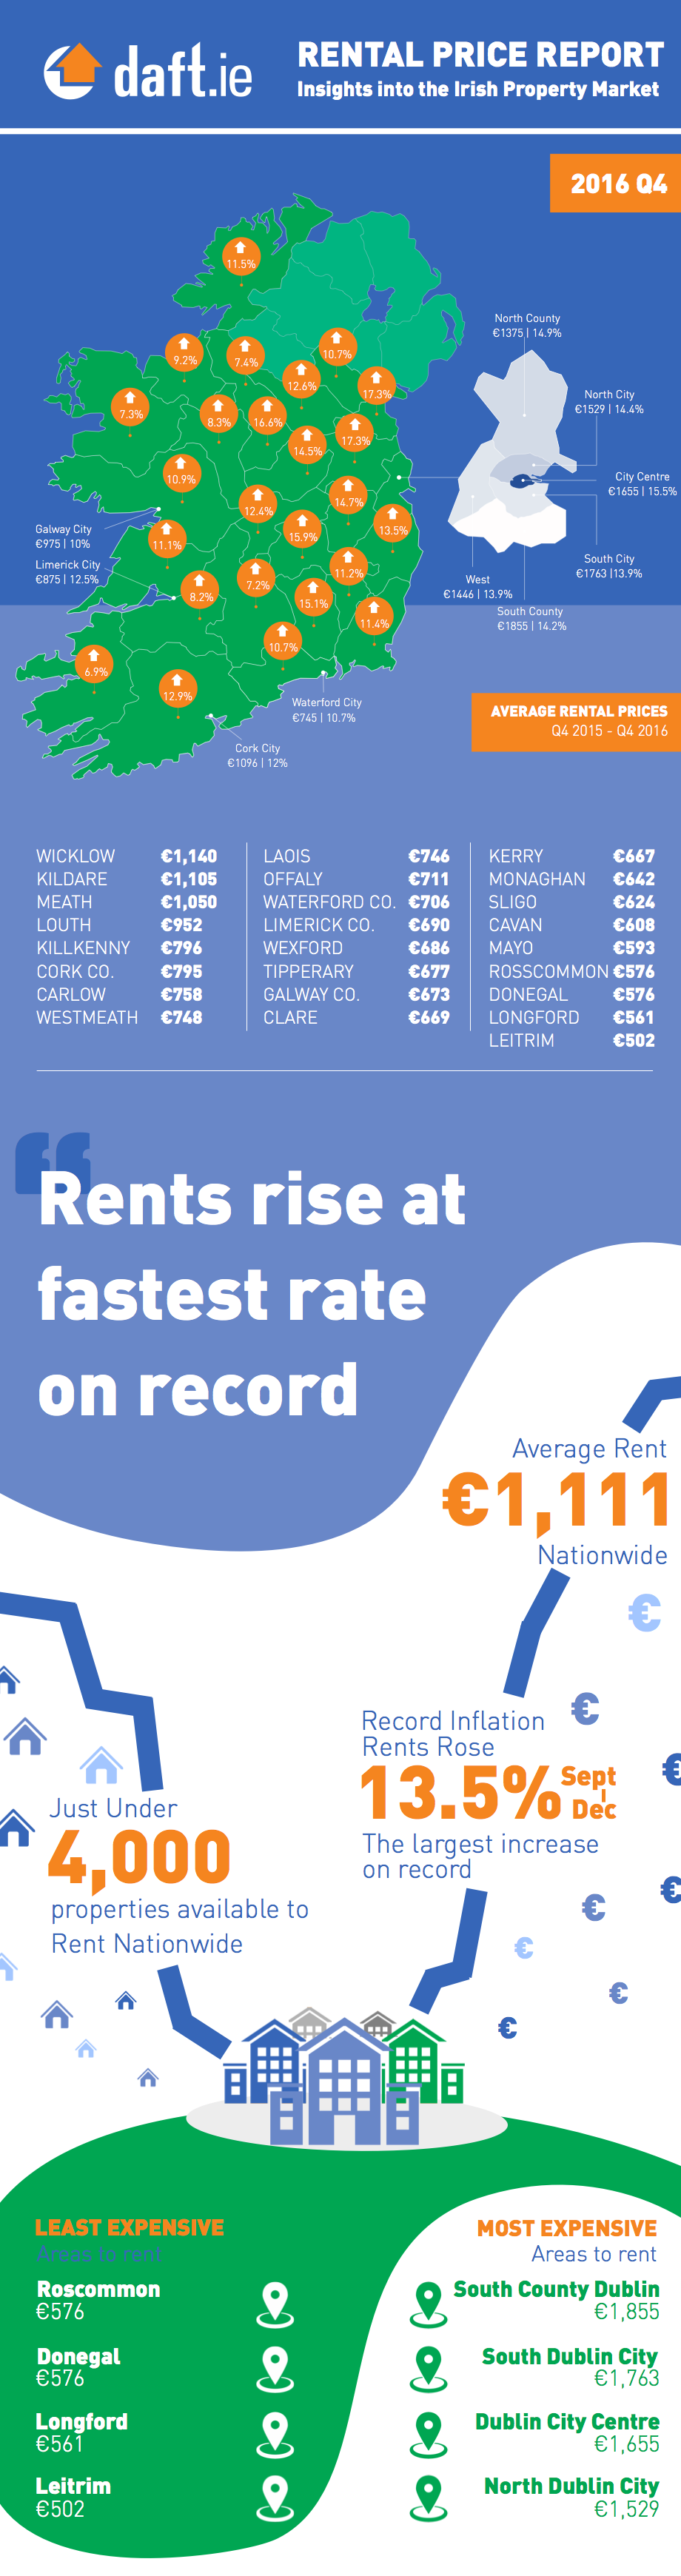 Daft.ie Rental Report: Q4 2016 Infographic